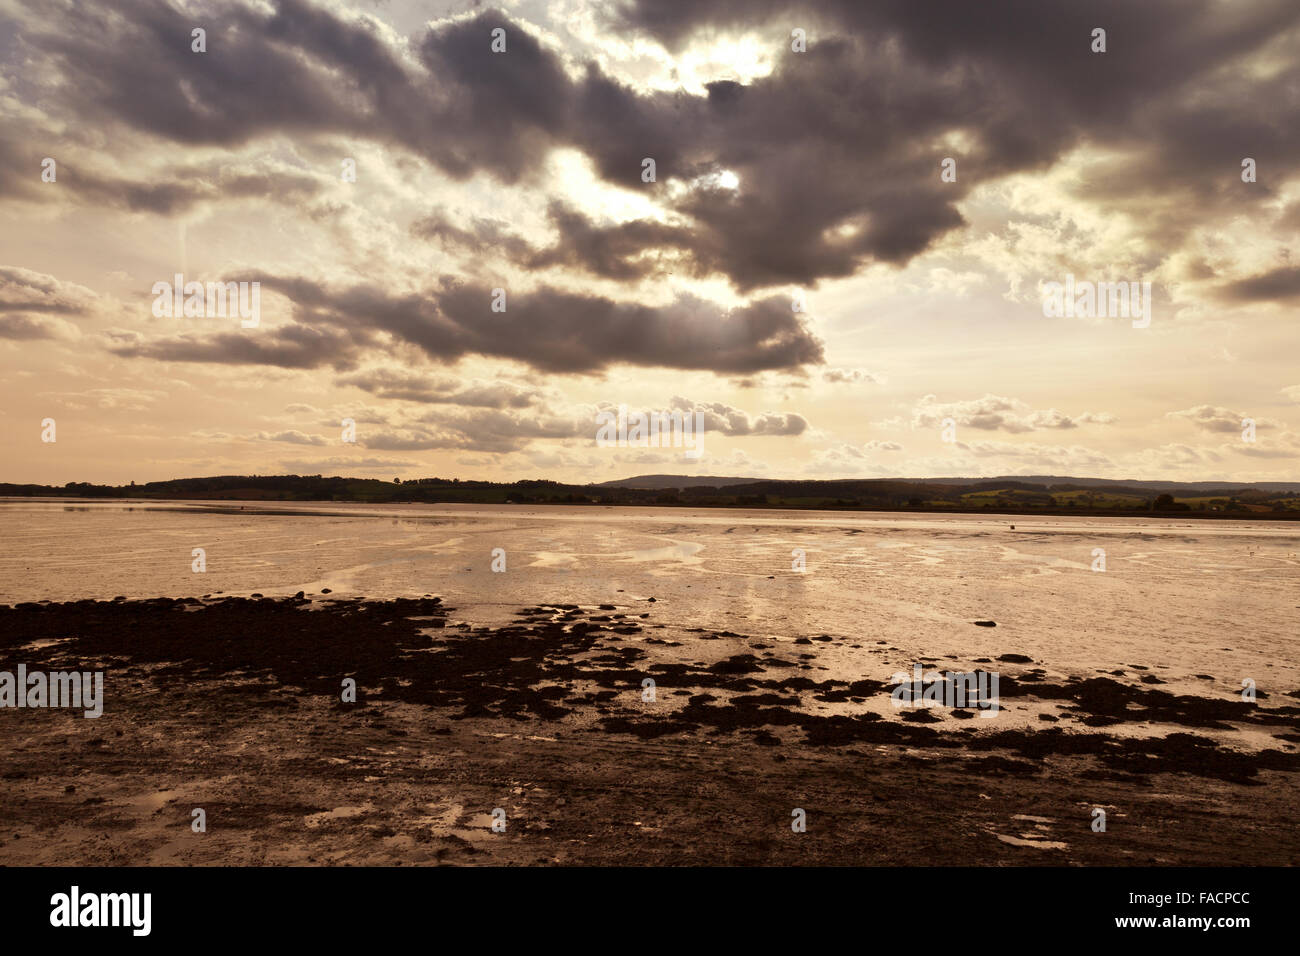 The sun sets over the River Exe estuary at Topsham, Devon, England, UK - Stock Image